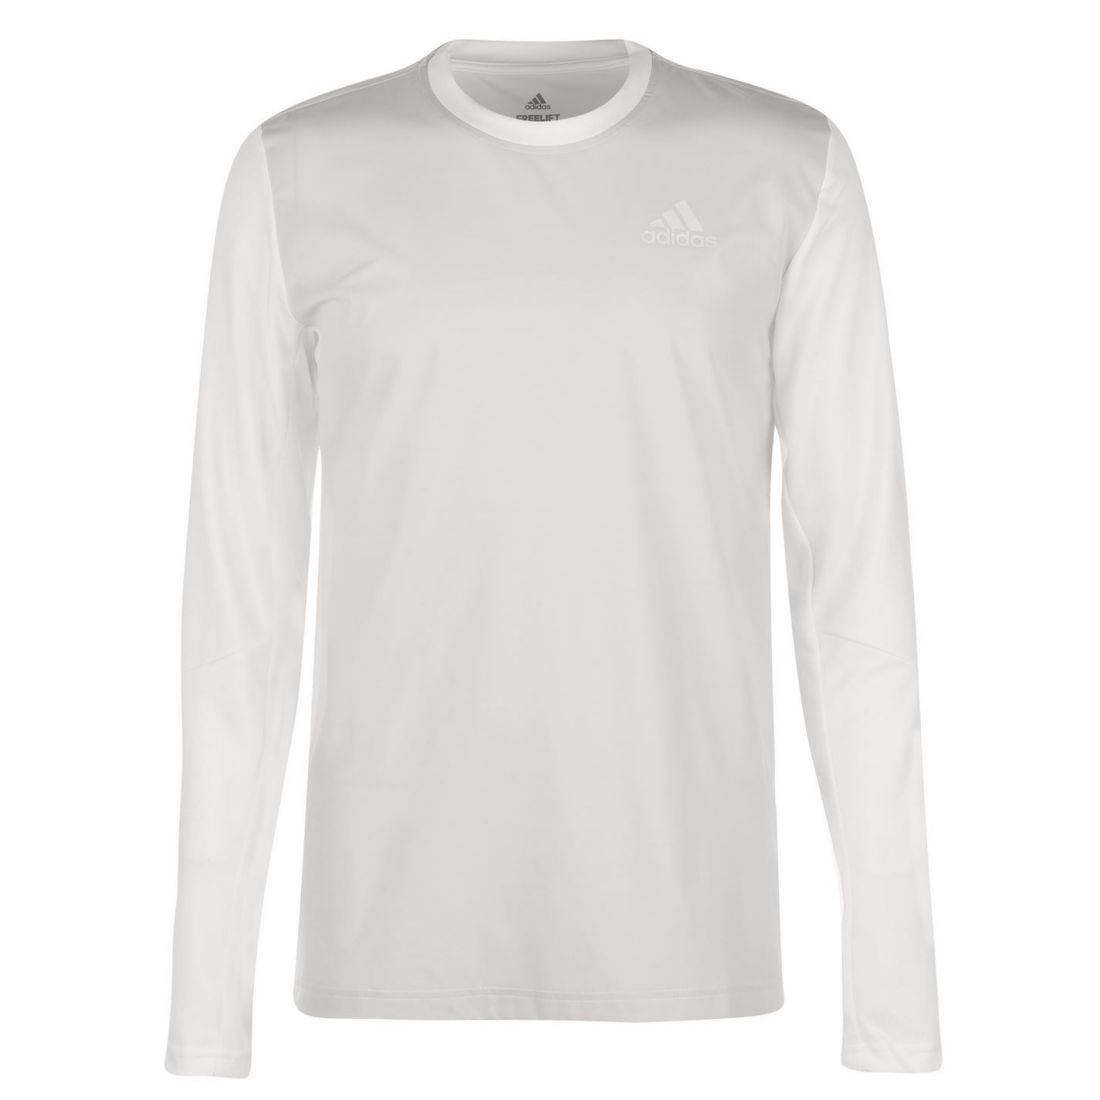 Adidas Freelift Full Length Sleeve T Shirt Mens Gents Performance Tee Top Crew